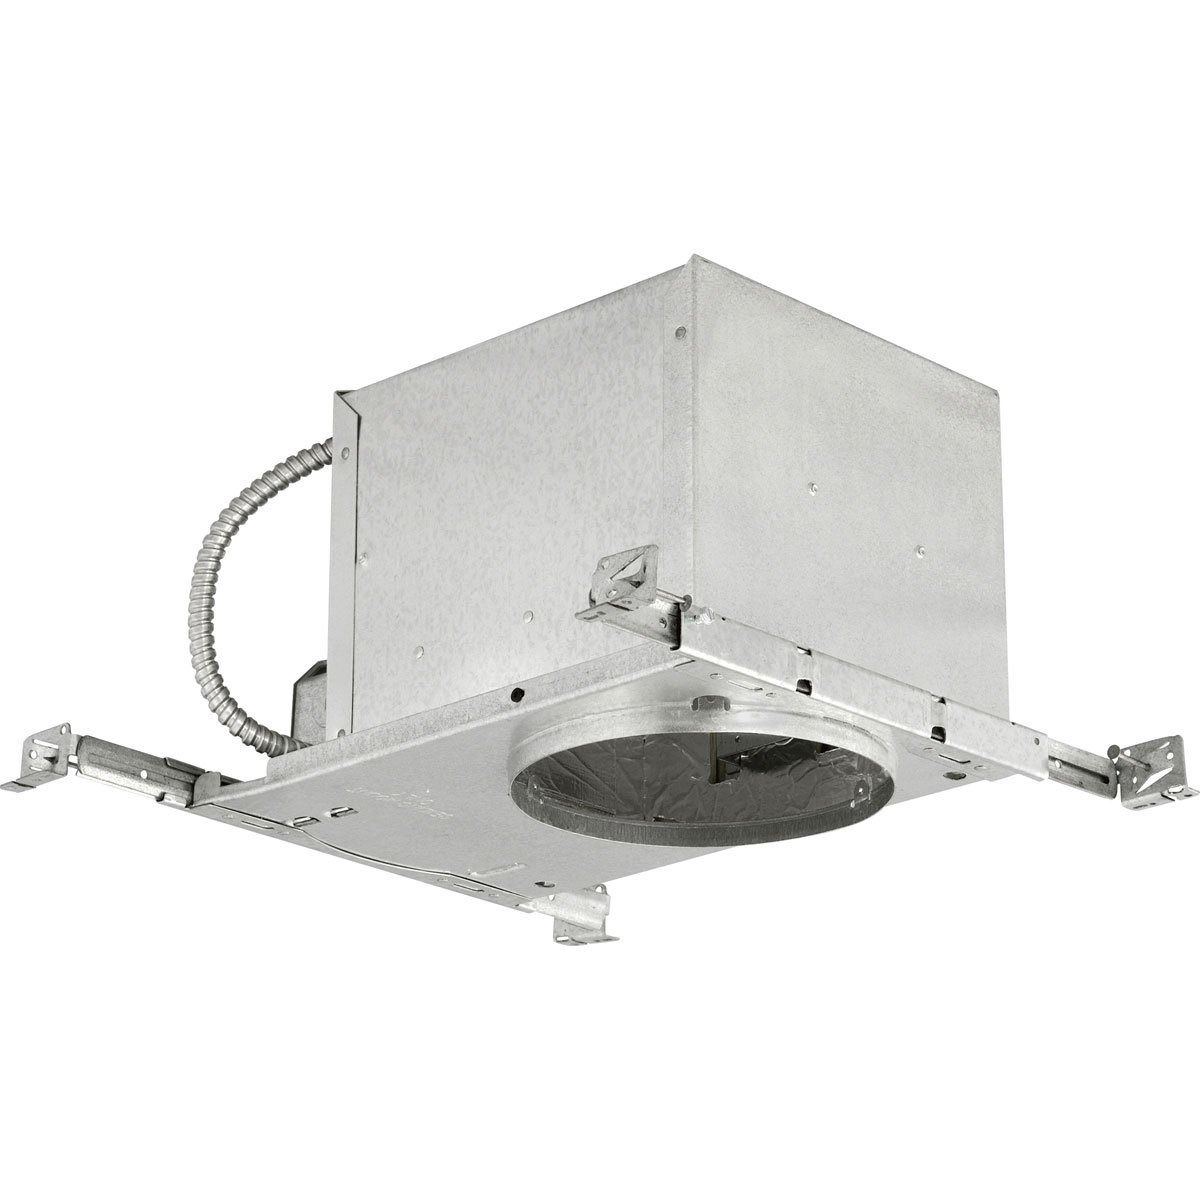 Progress Lighting P645-TG Ic Housing for New Construction UL/CUL Listed for Damp Locations